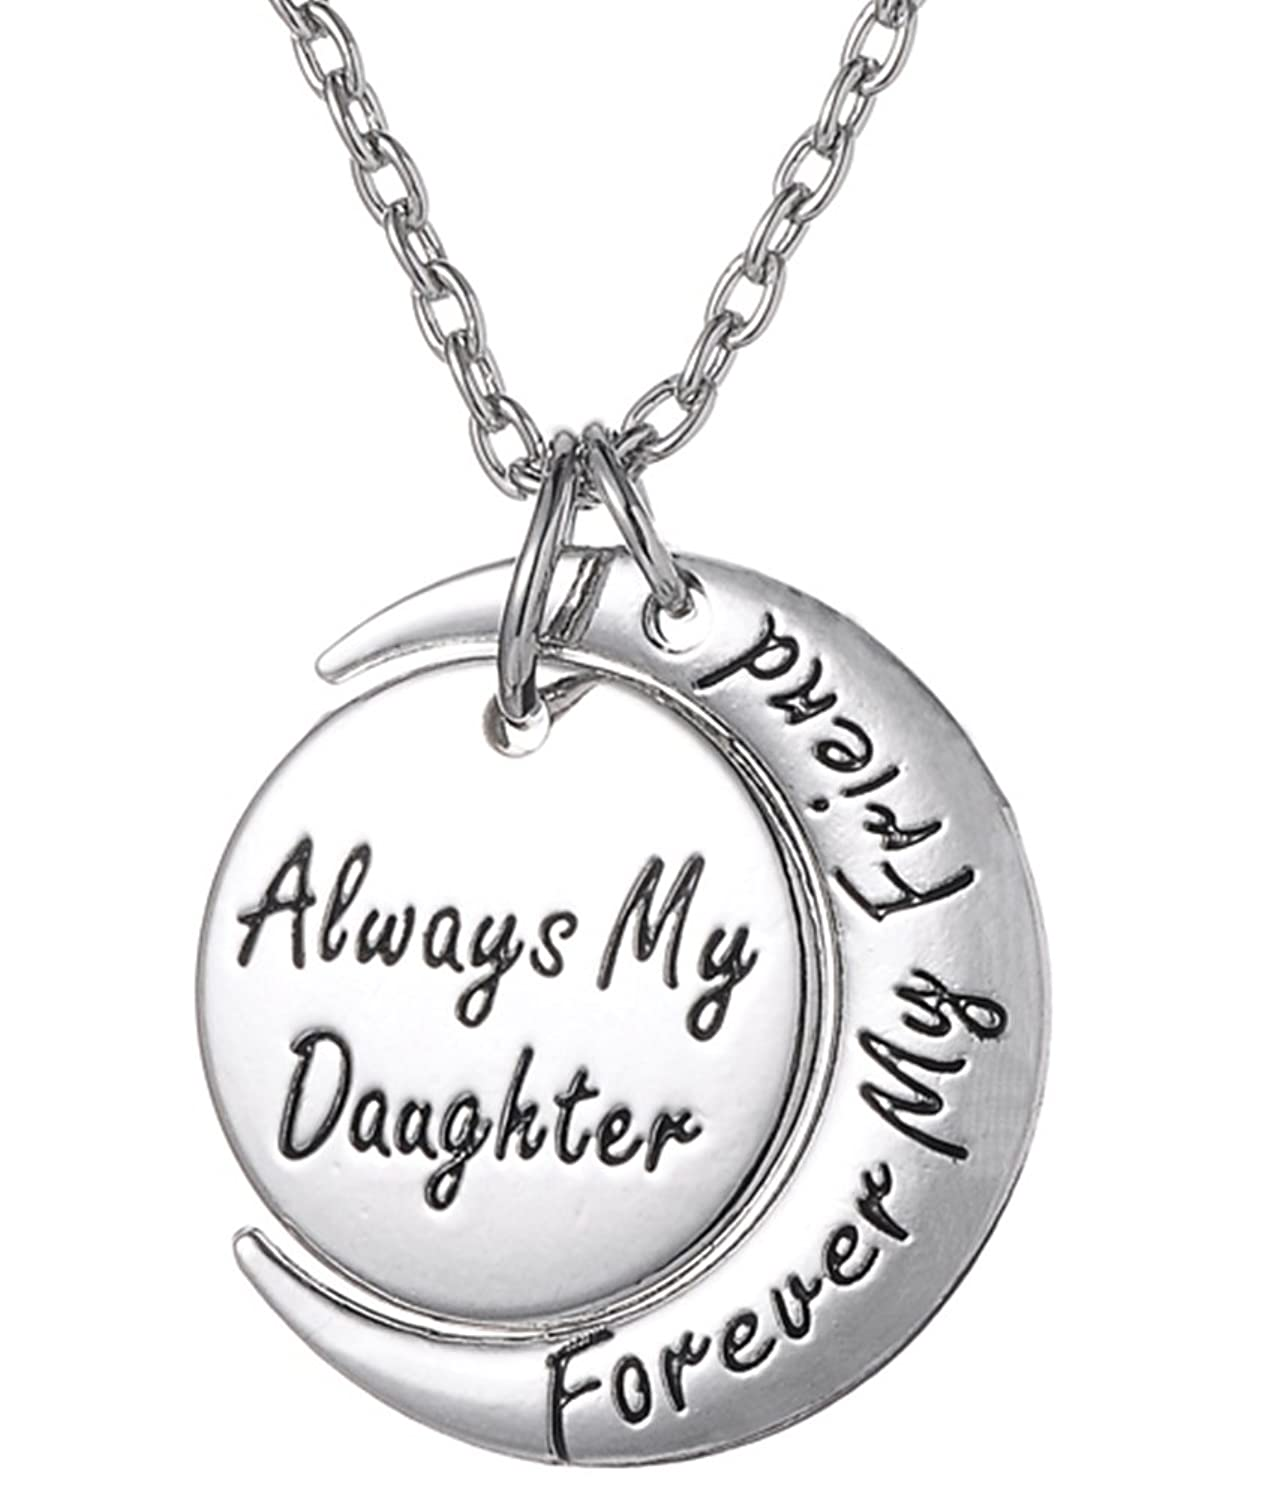 Daughter Necklace ''Always My Daughter Forever My Friend'' Sentimental Engraved Moon Pendant - Jewelry Gifts from Mom, Dad